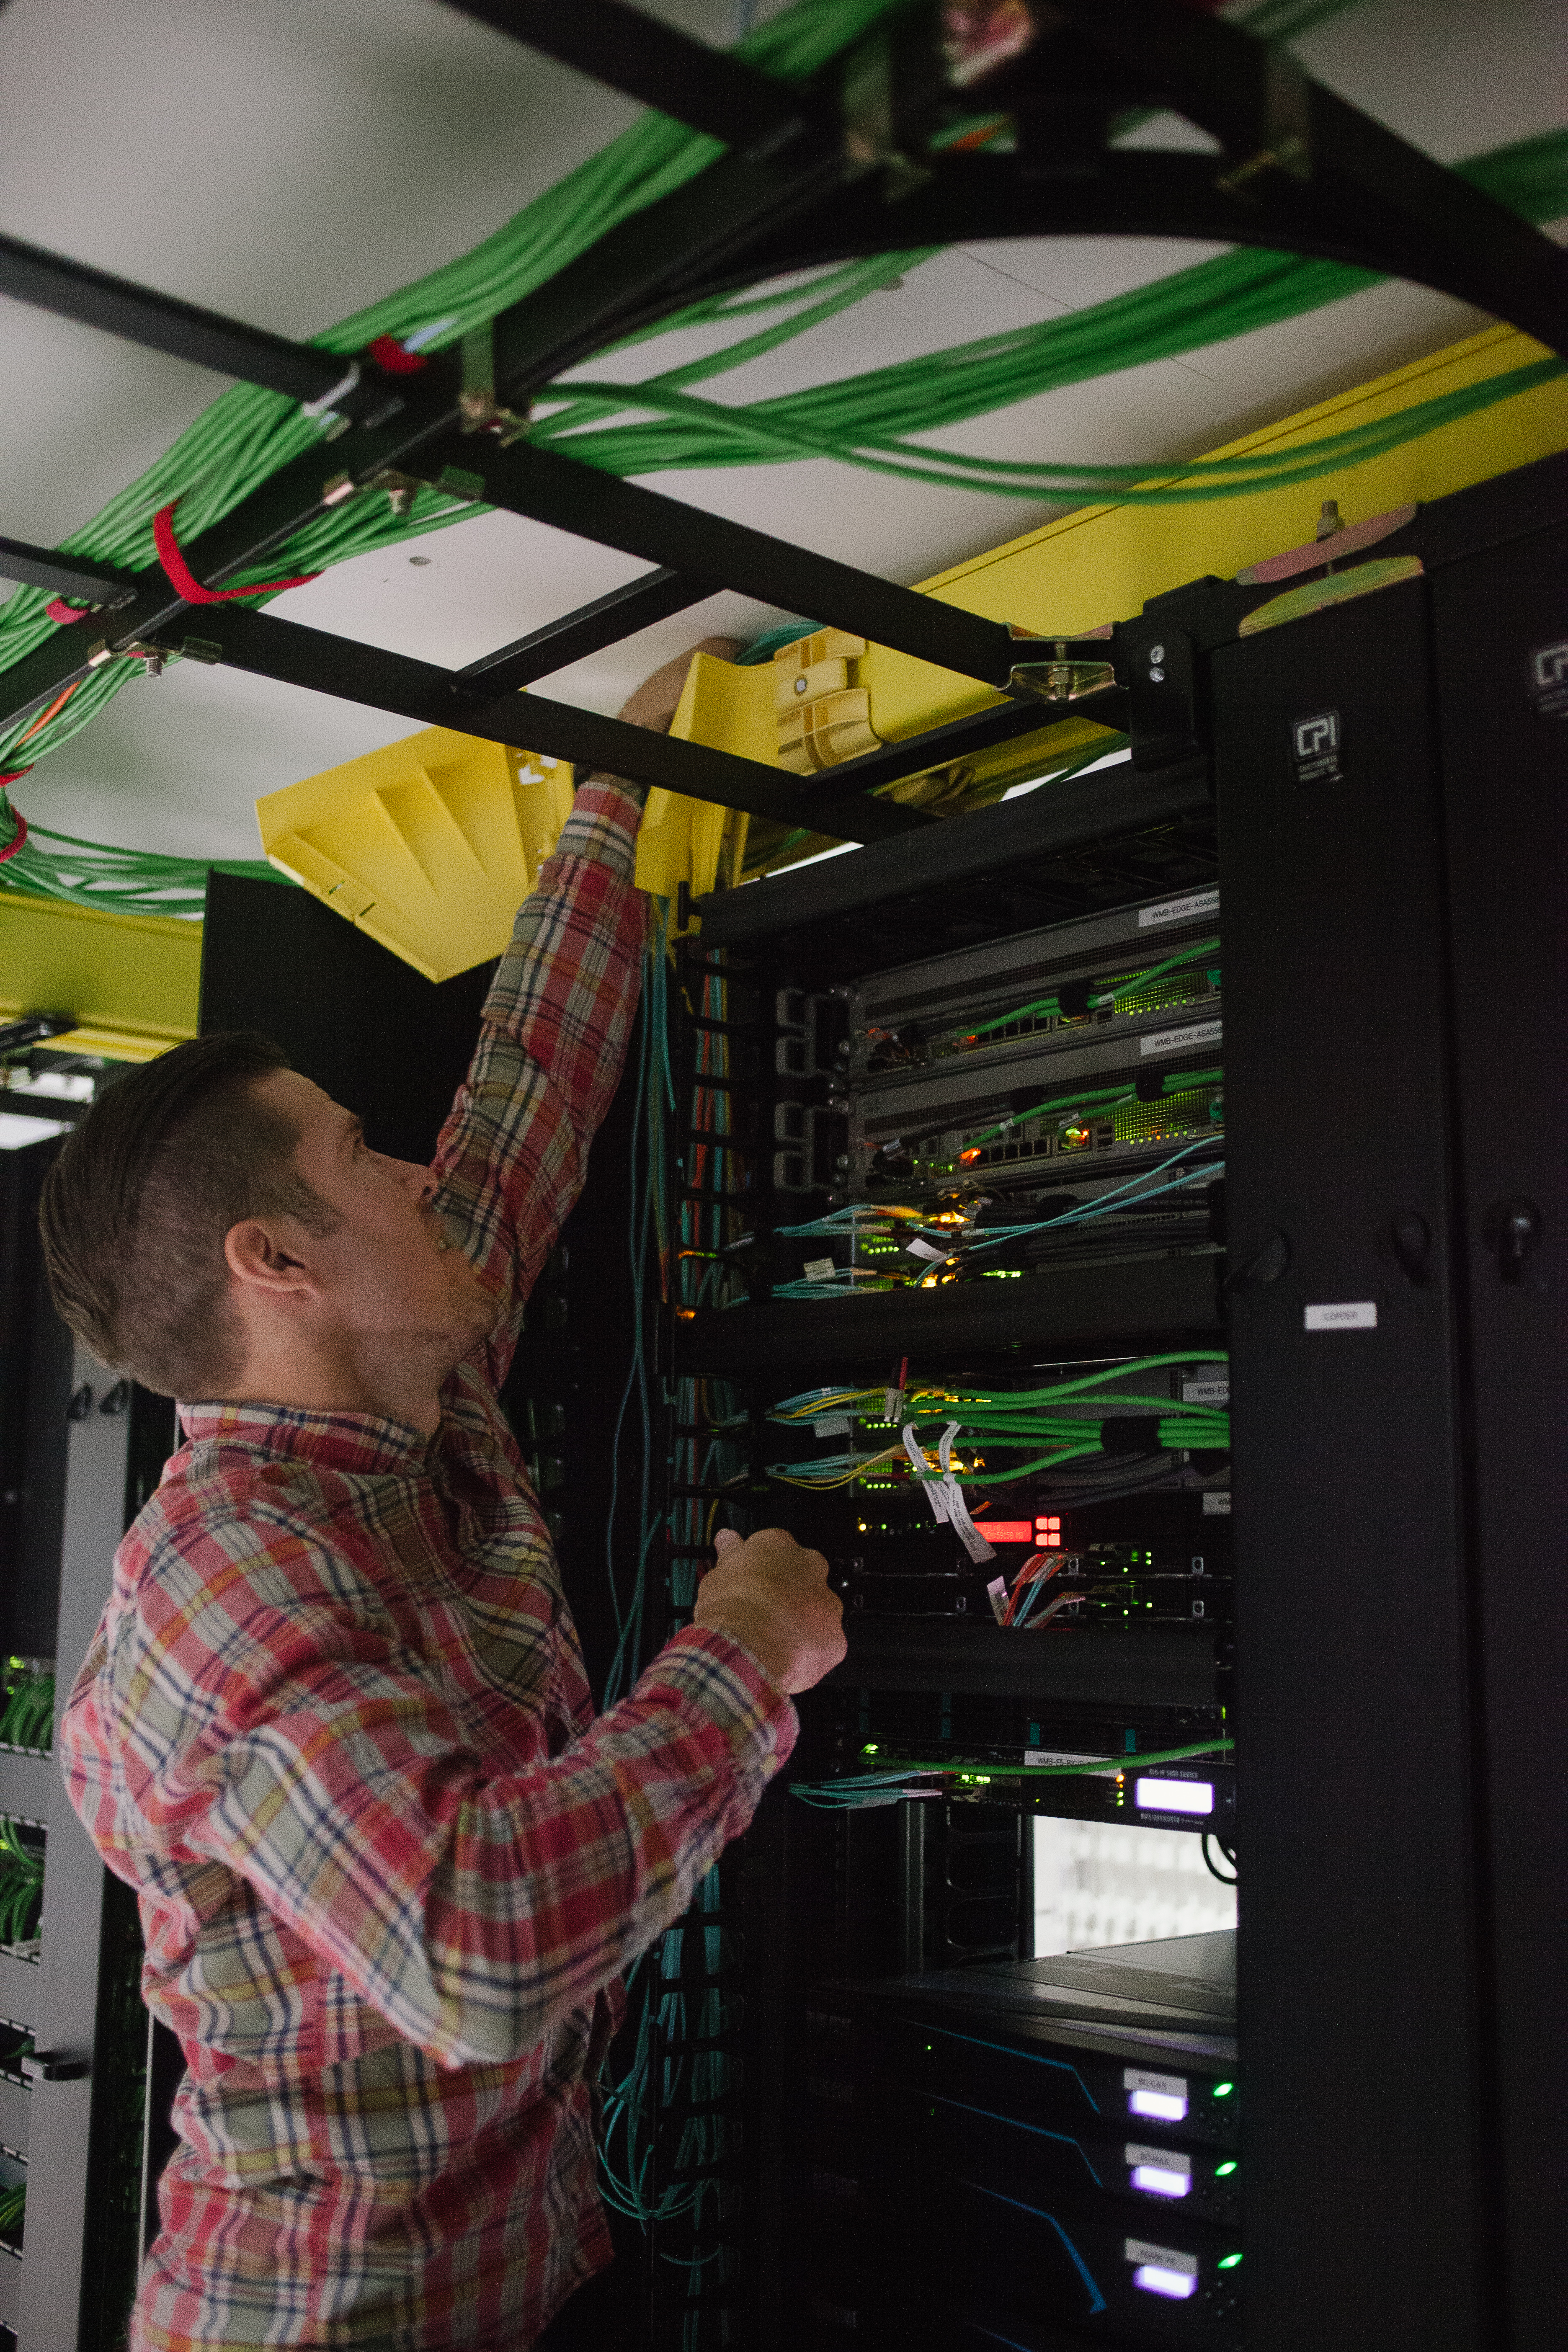 Inside the city and county of Denver's data center. With a 2015 estimated population of 682,545, Denver ranks as the 19th most-populous U.S. city.